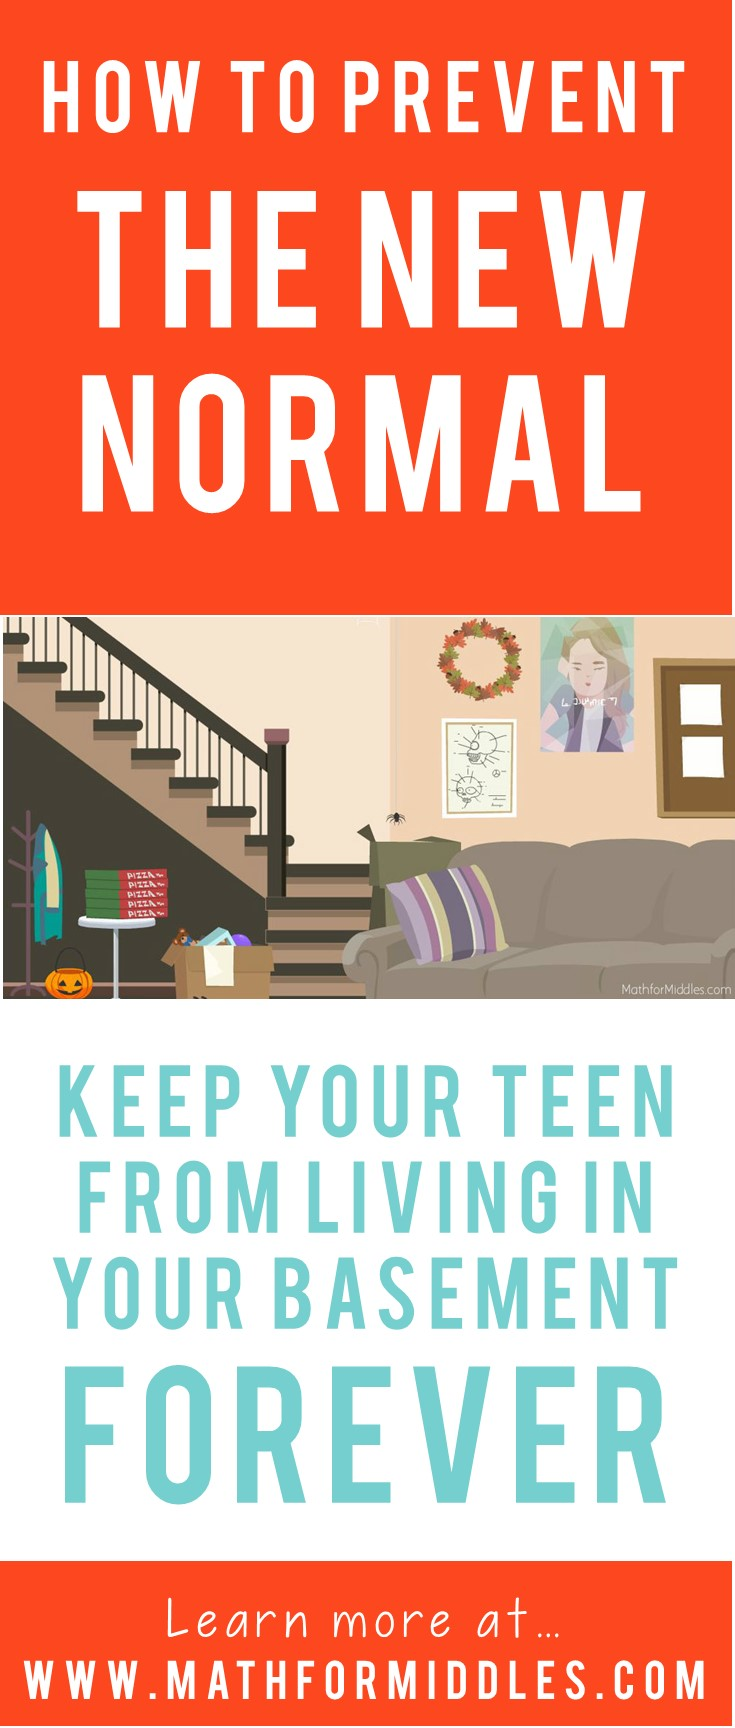 Prevent the 'New Normal': How to Keep Your Teen from Living in Your Basement Forever [005]